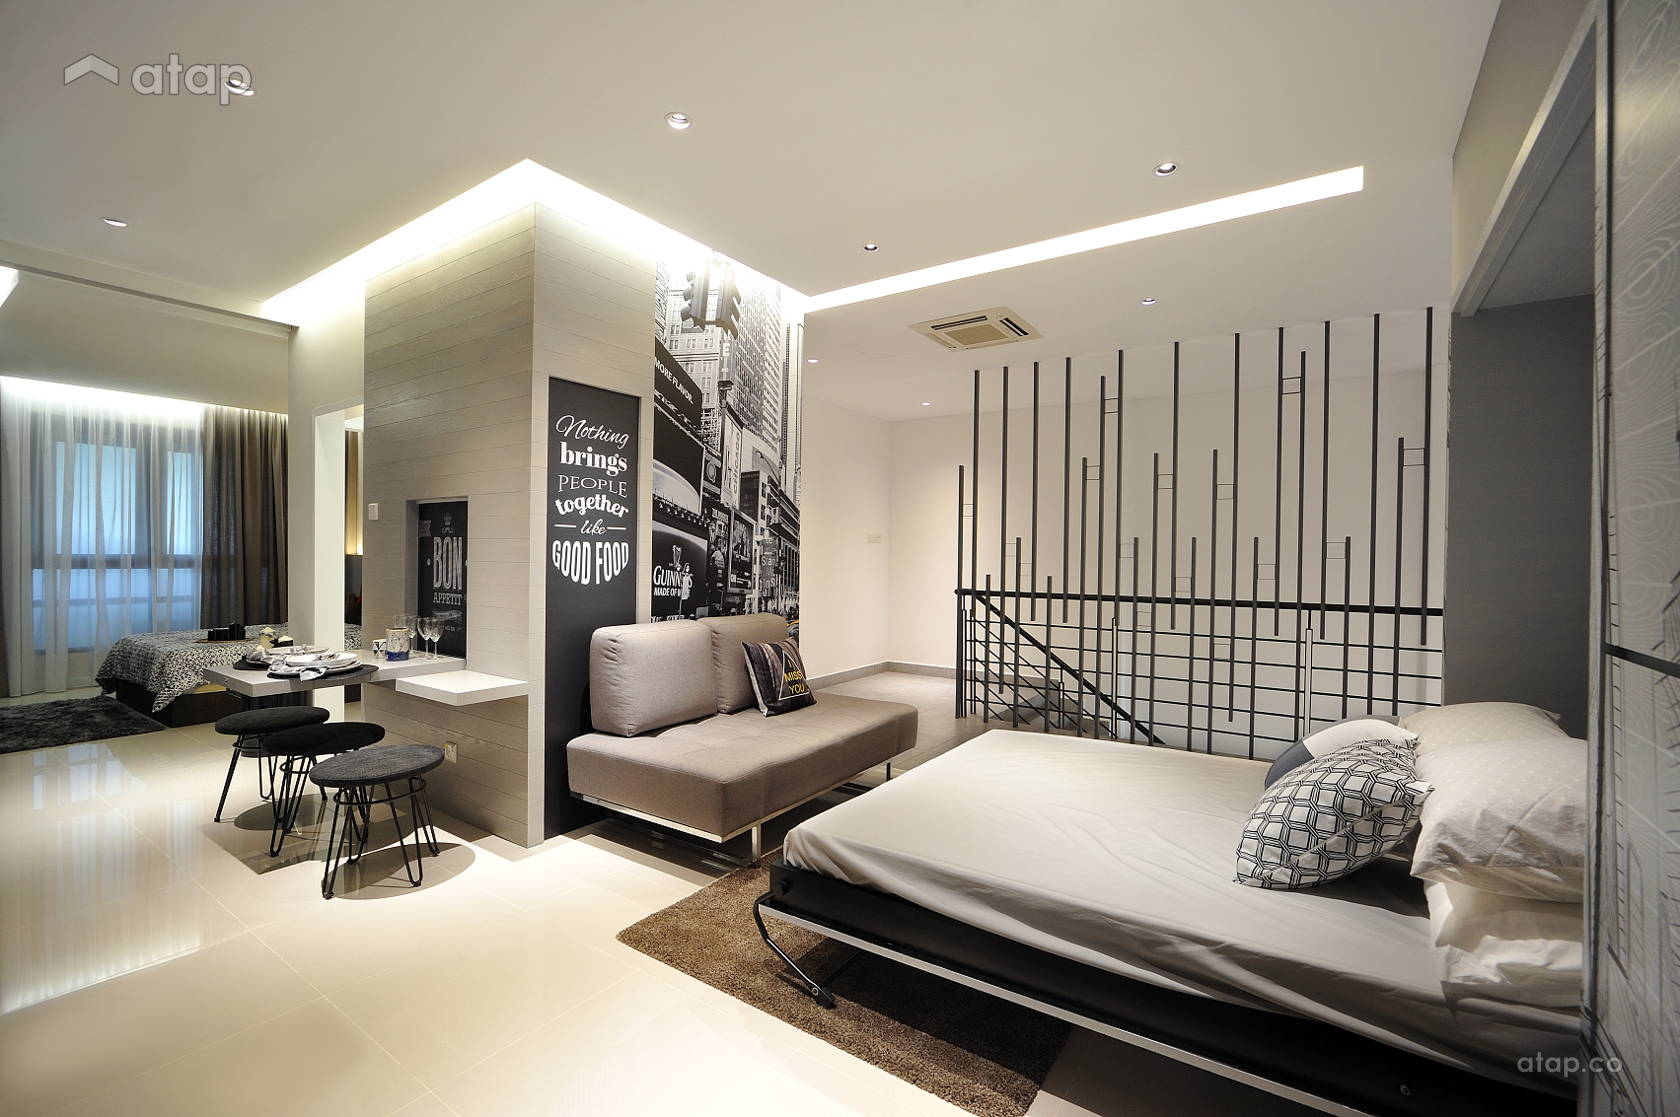 High Quality HighPark Studio A1 Interior Design Renovation Ideas, Photos And Price In  Malaysia | Atap.co Amazing Pictures